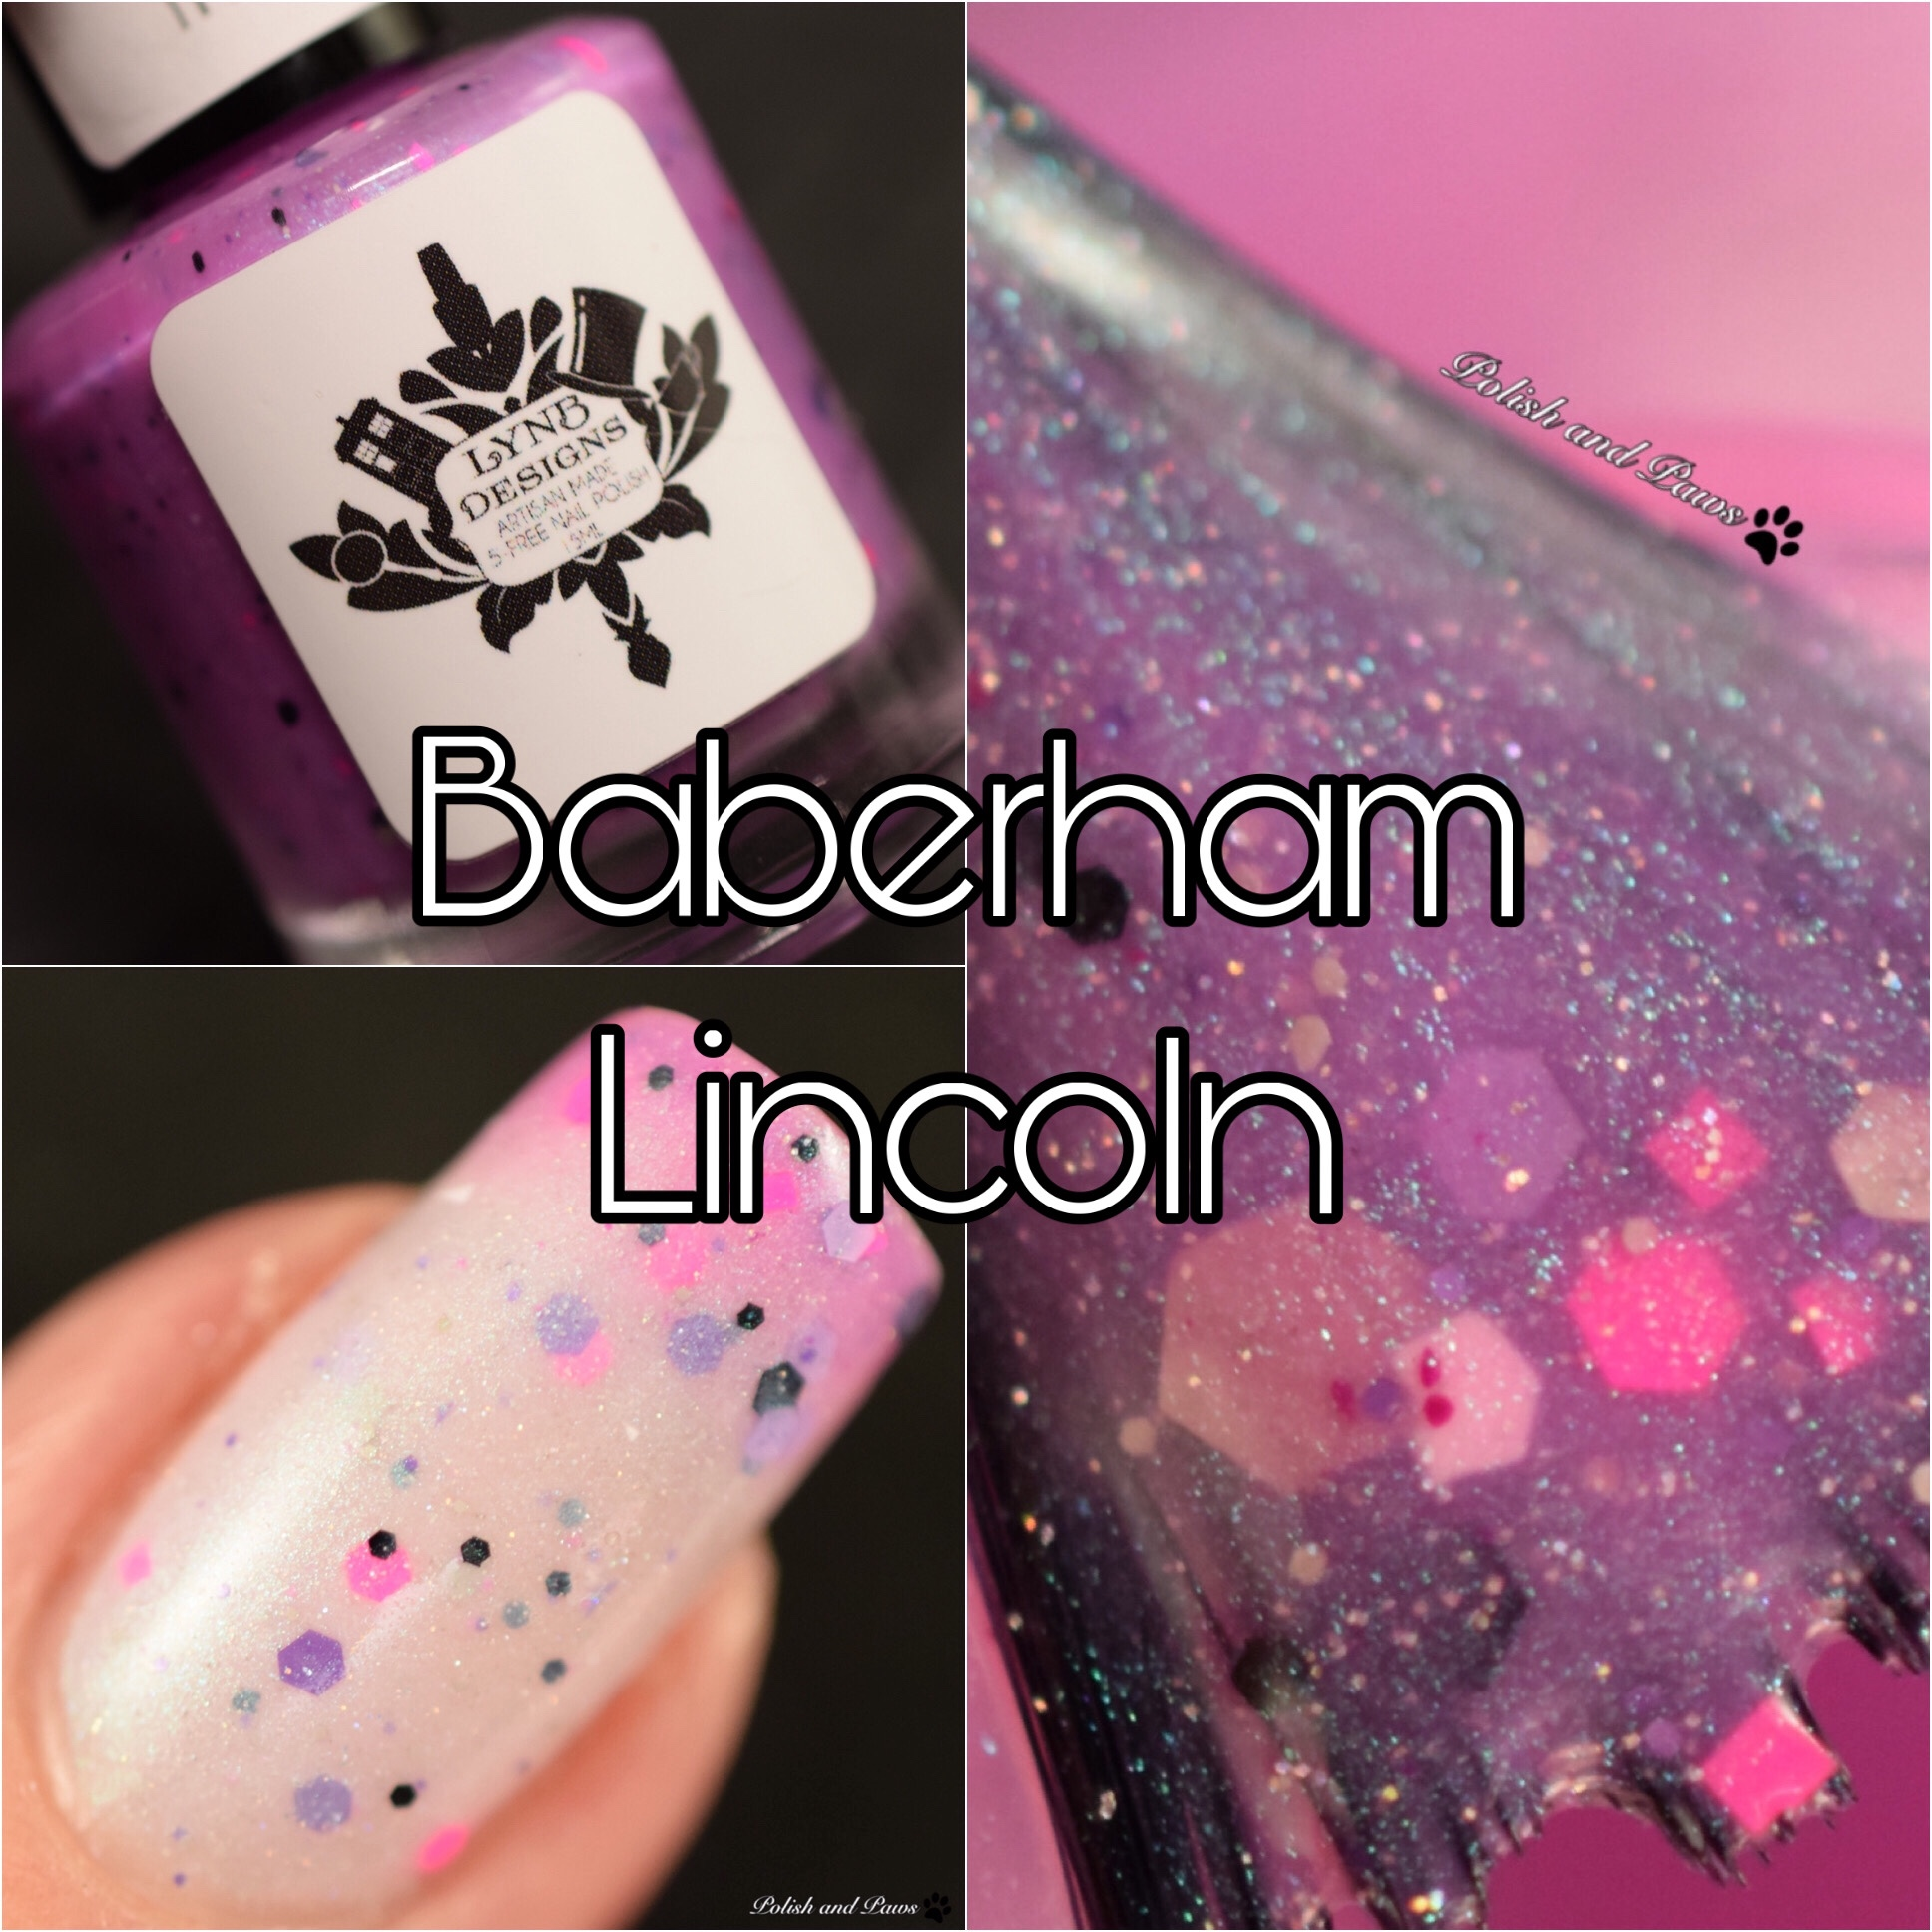 LynB Designs Baberham Lincoln